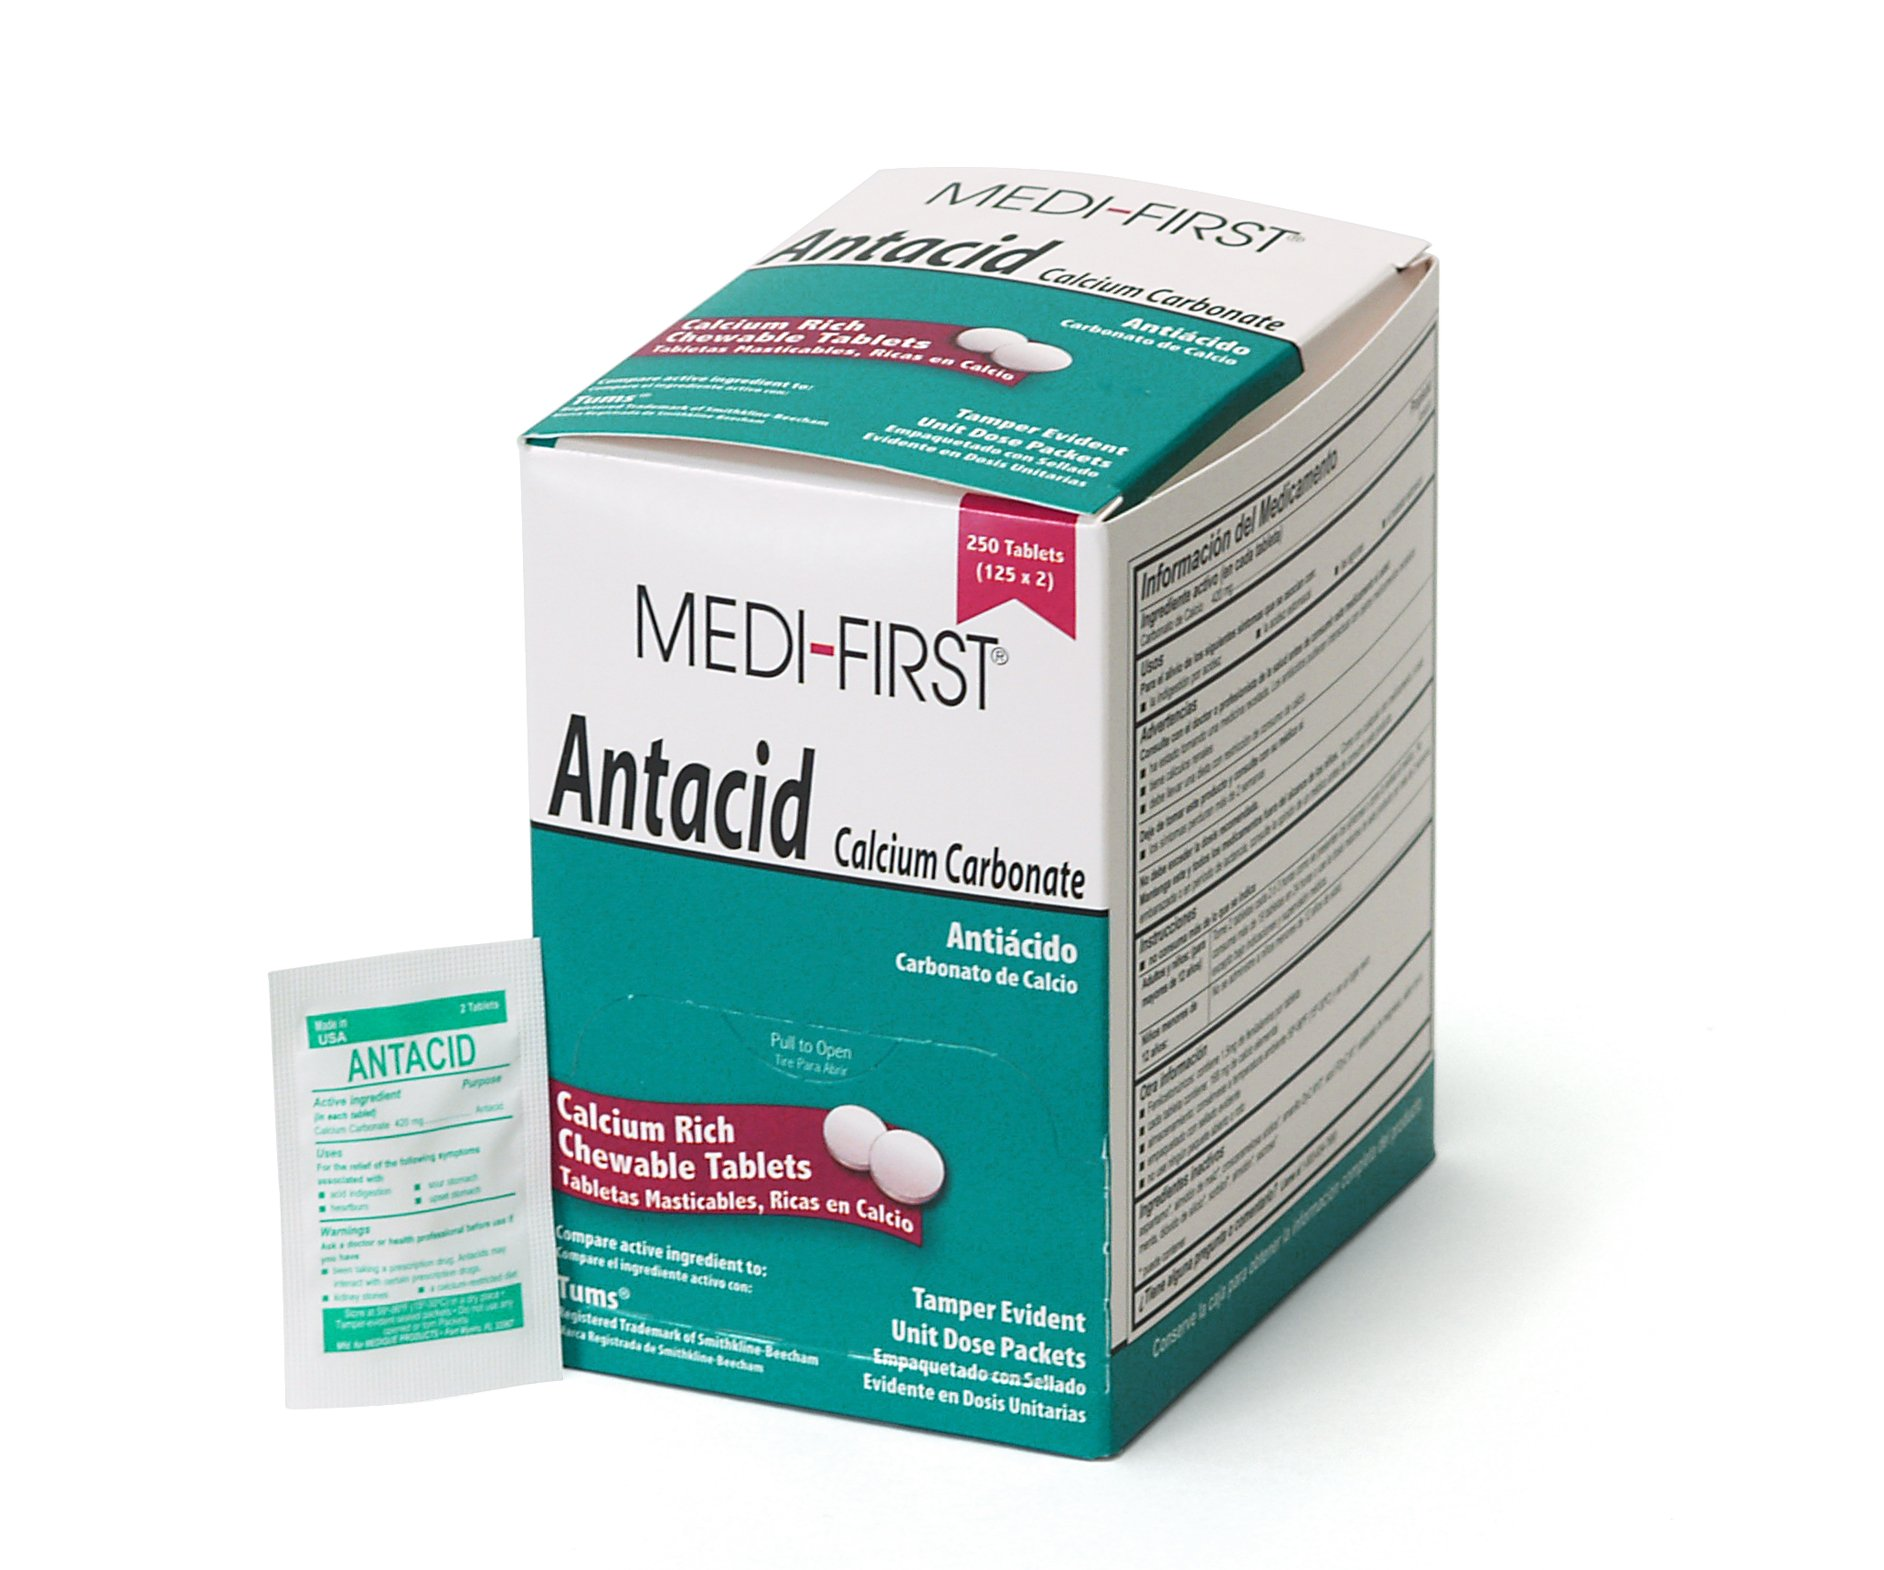 Medi-First 80248 Chewable Mint Antacid Tablets, 125-Packets of 2 by Medique/Medi-First